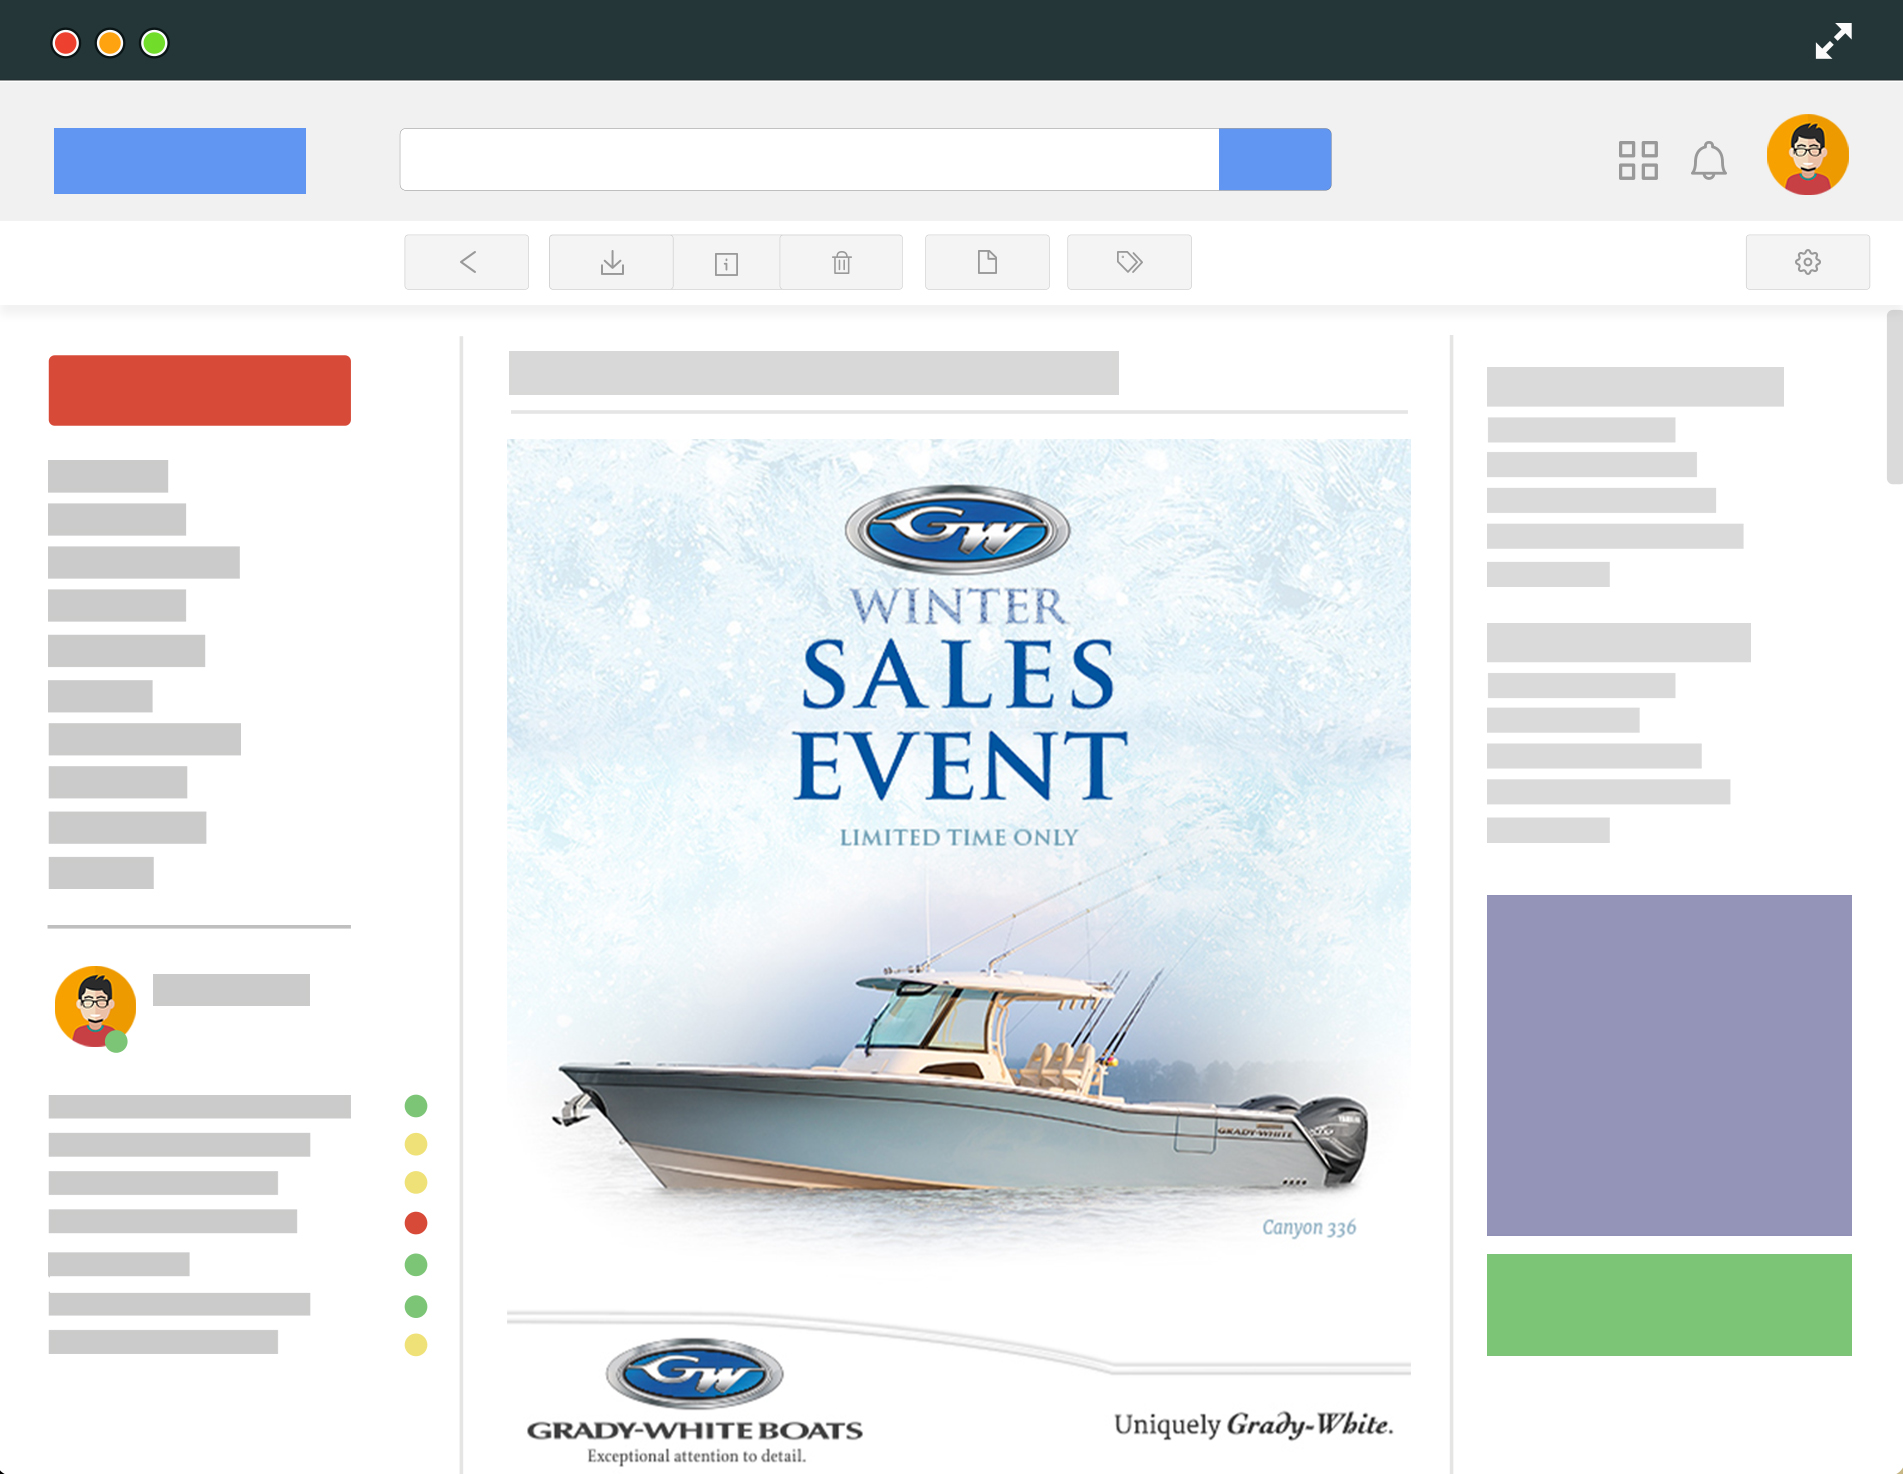 Grady-White Boats Winter Sales Event E-Newsletter Template